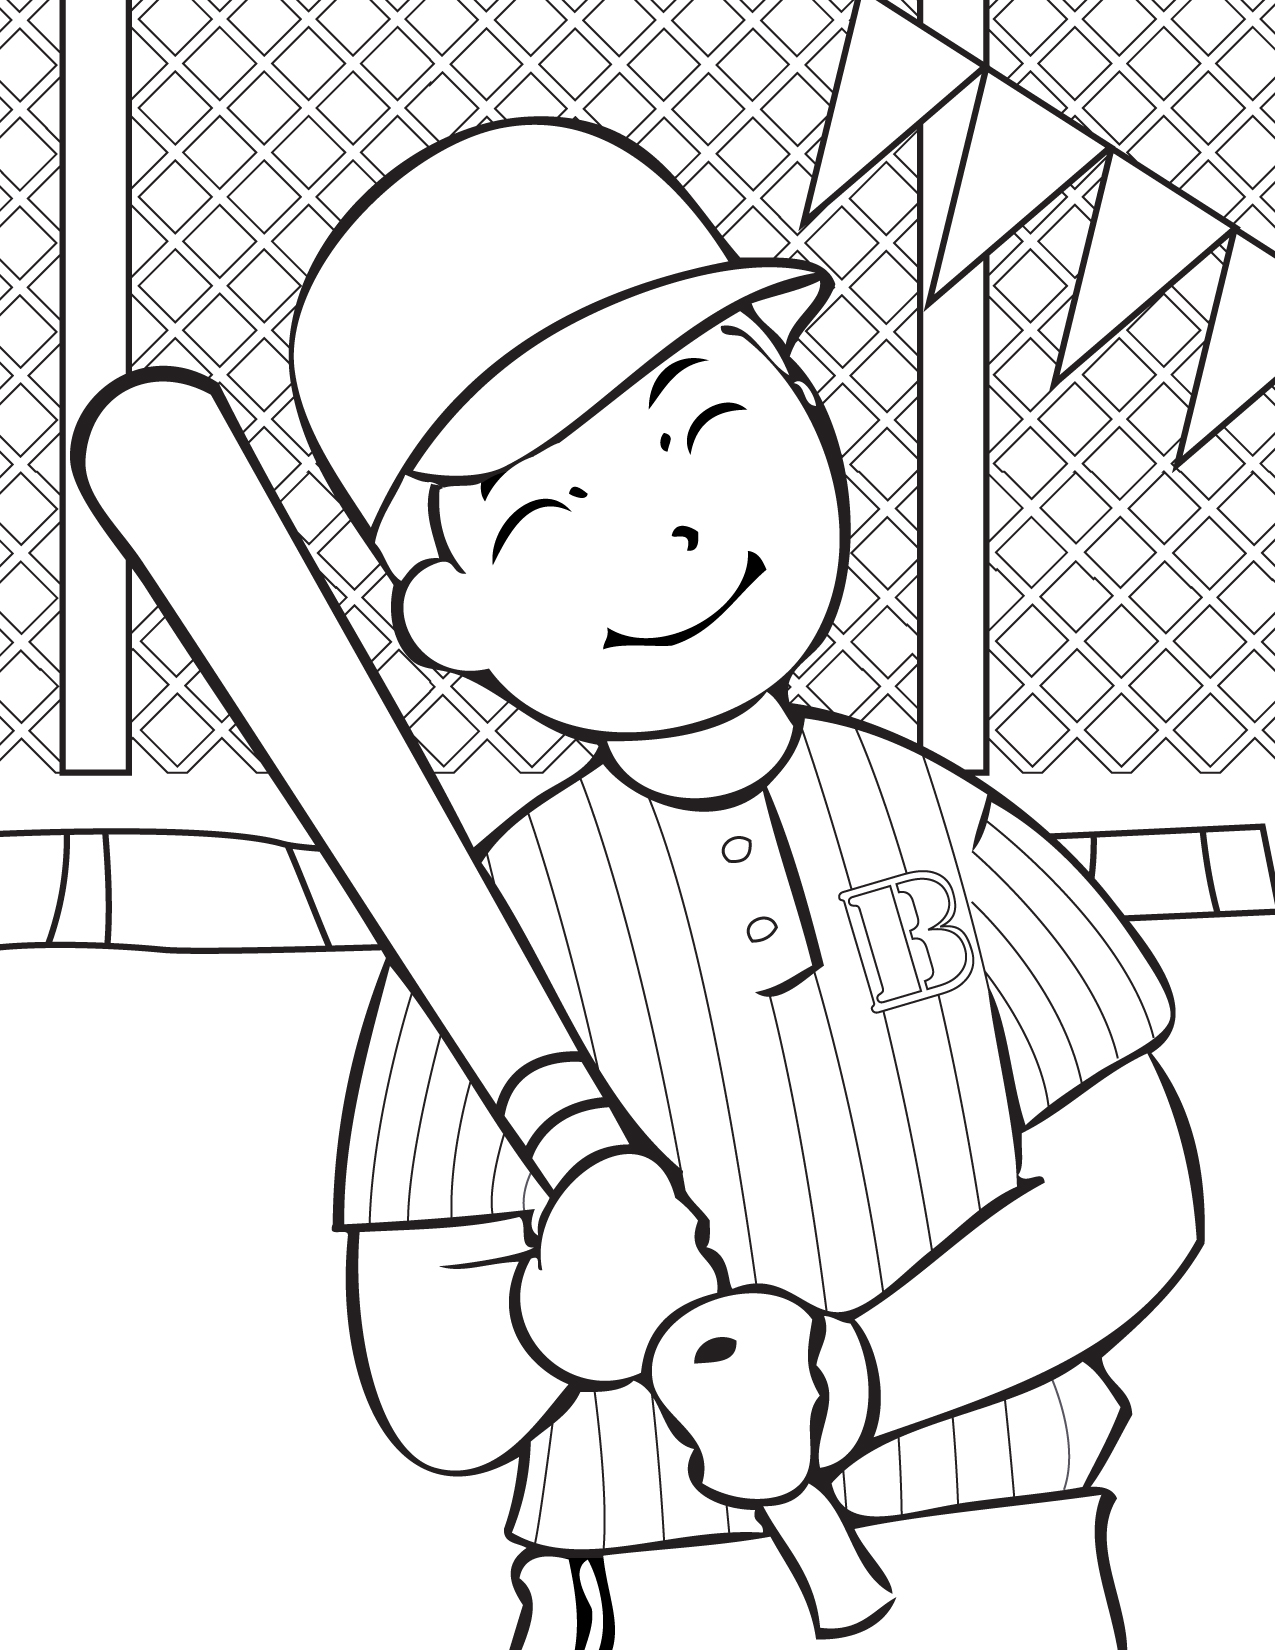 Free Printable Baseball Coloring Pages for Kids - Best Coloring ...